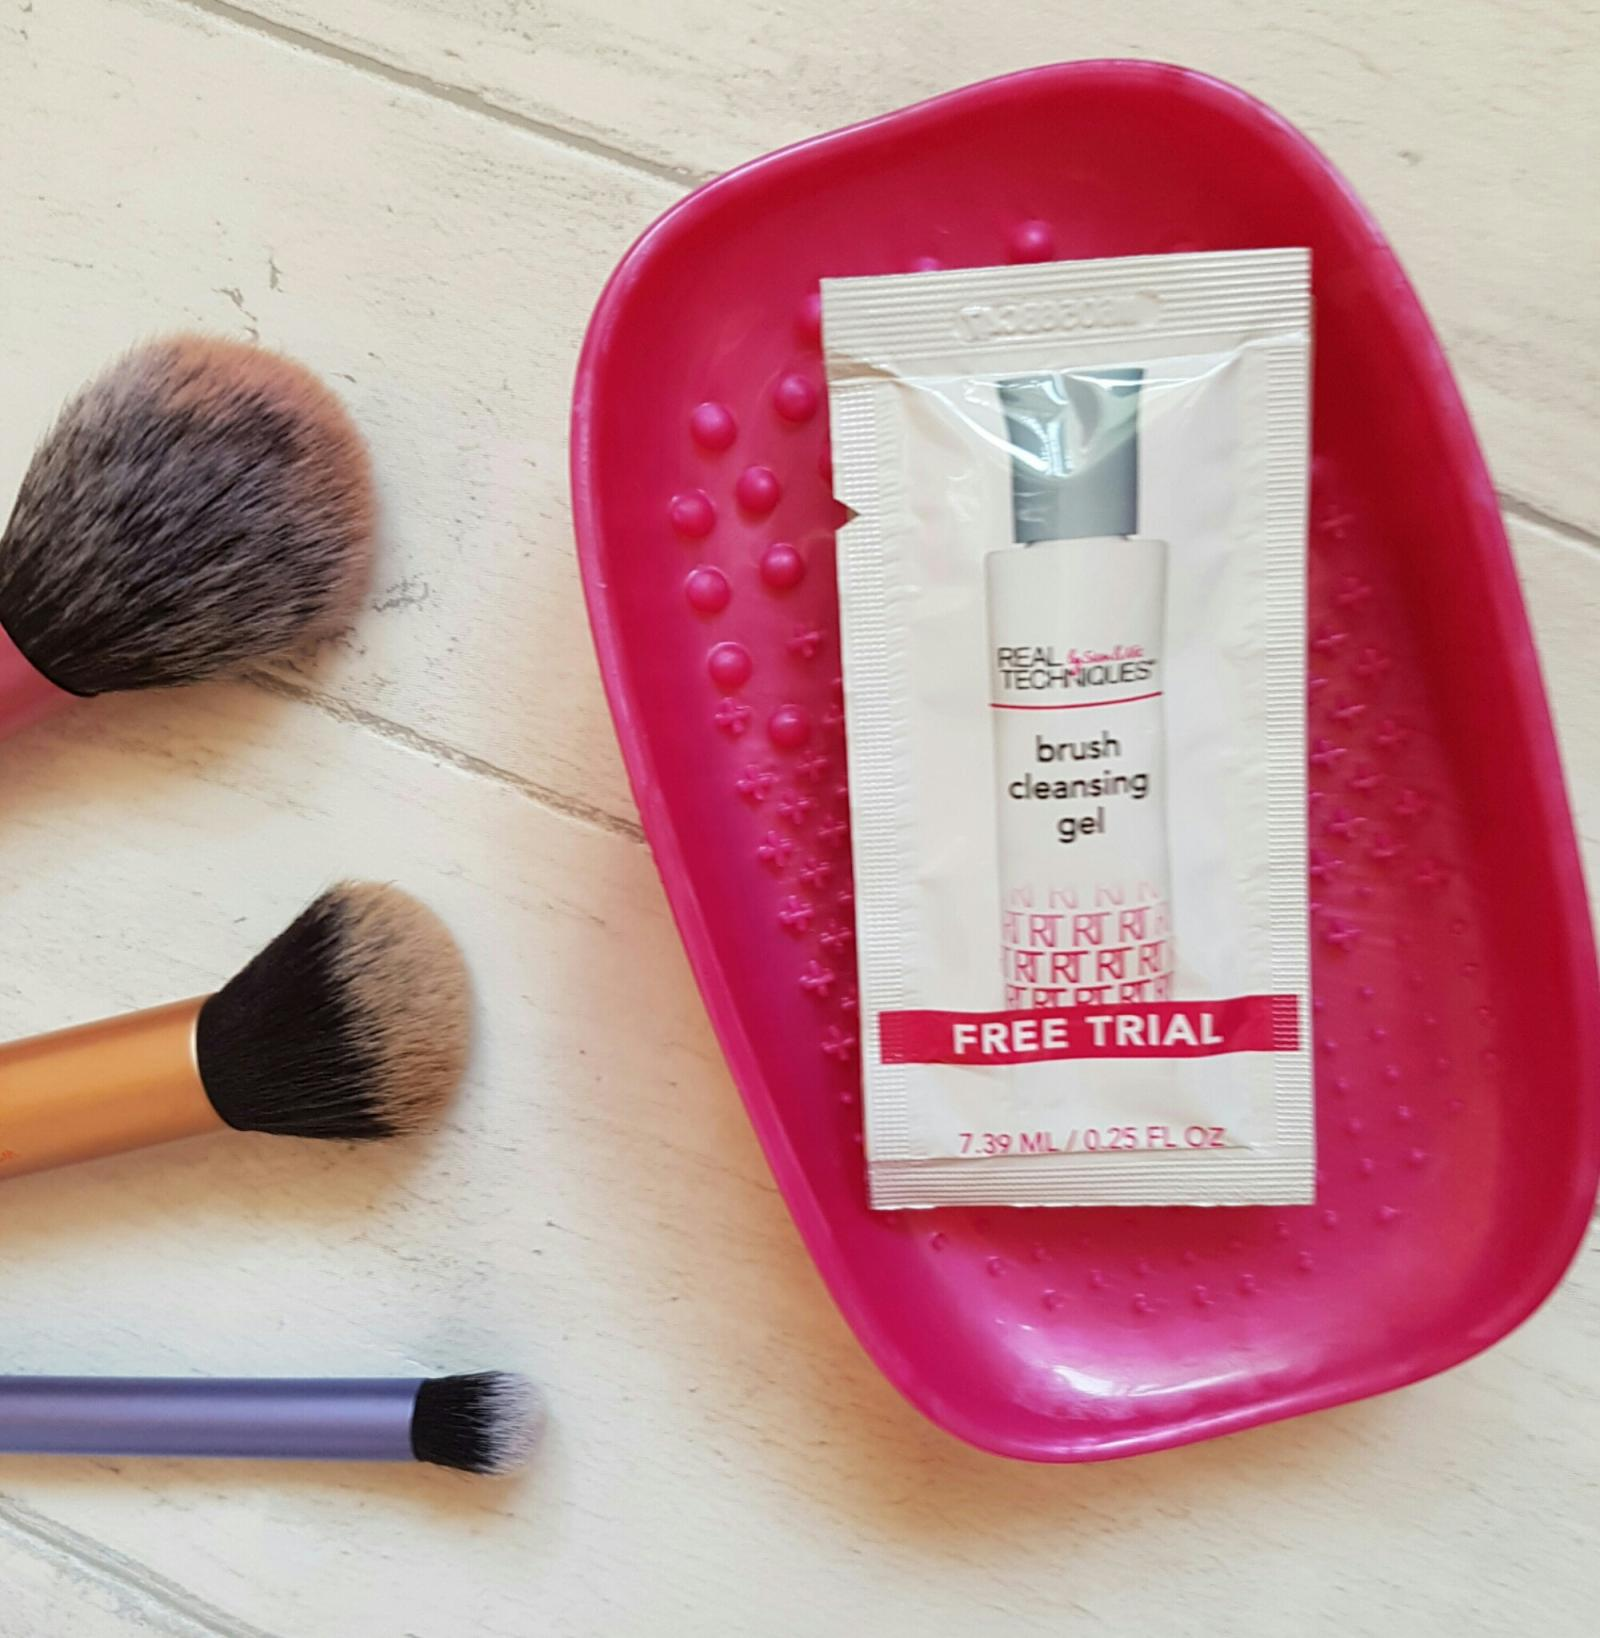 real techniques brush cleansing palette brush cleansing gel